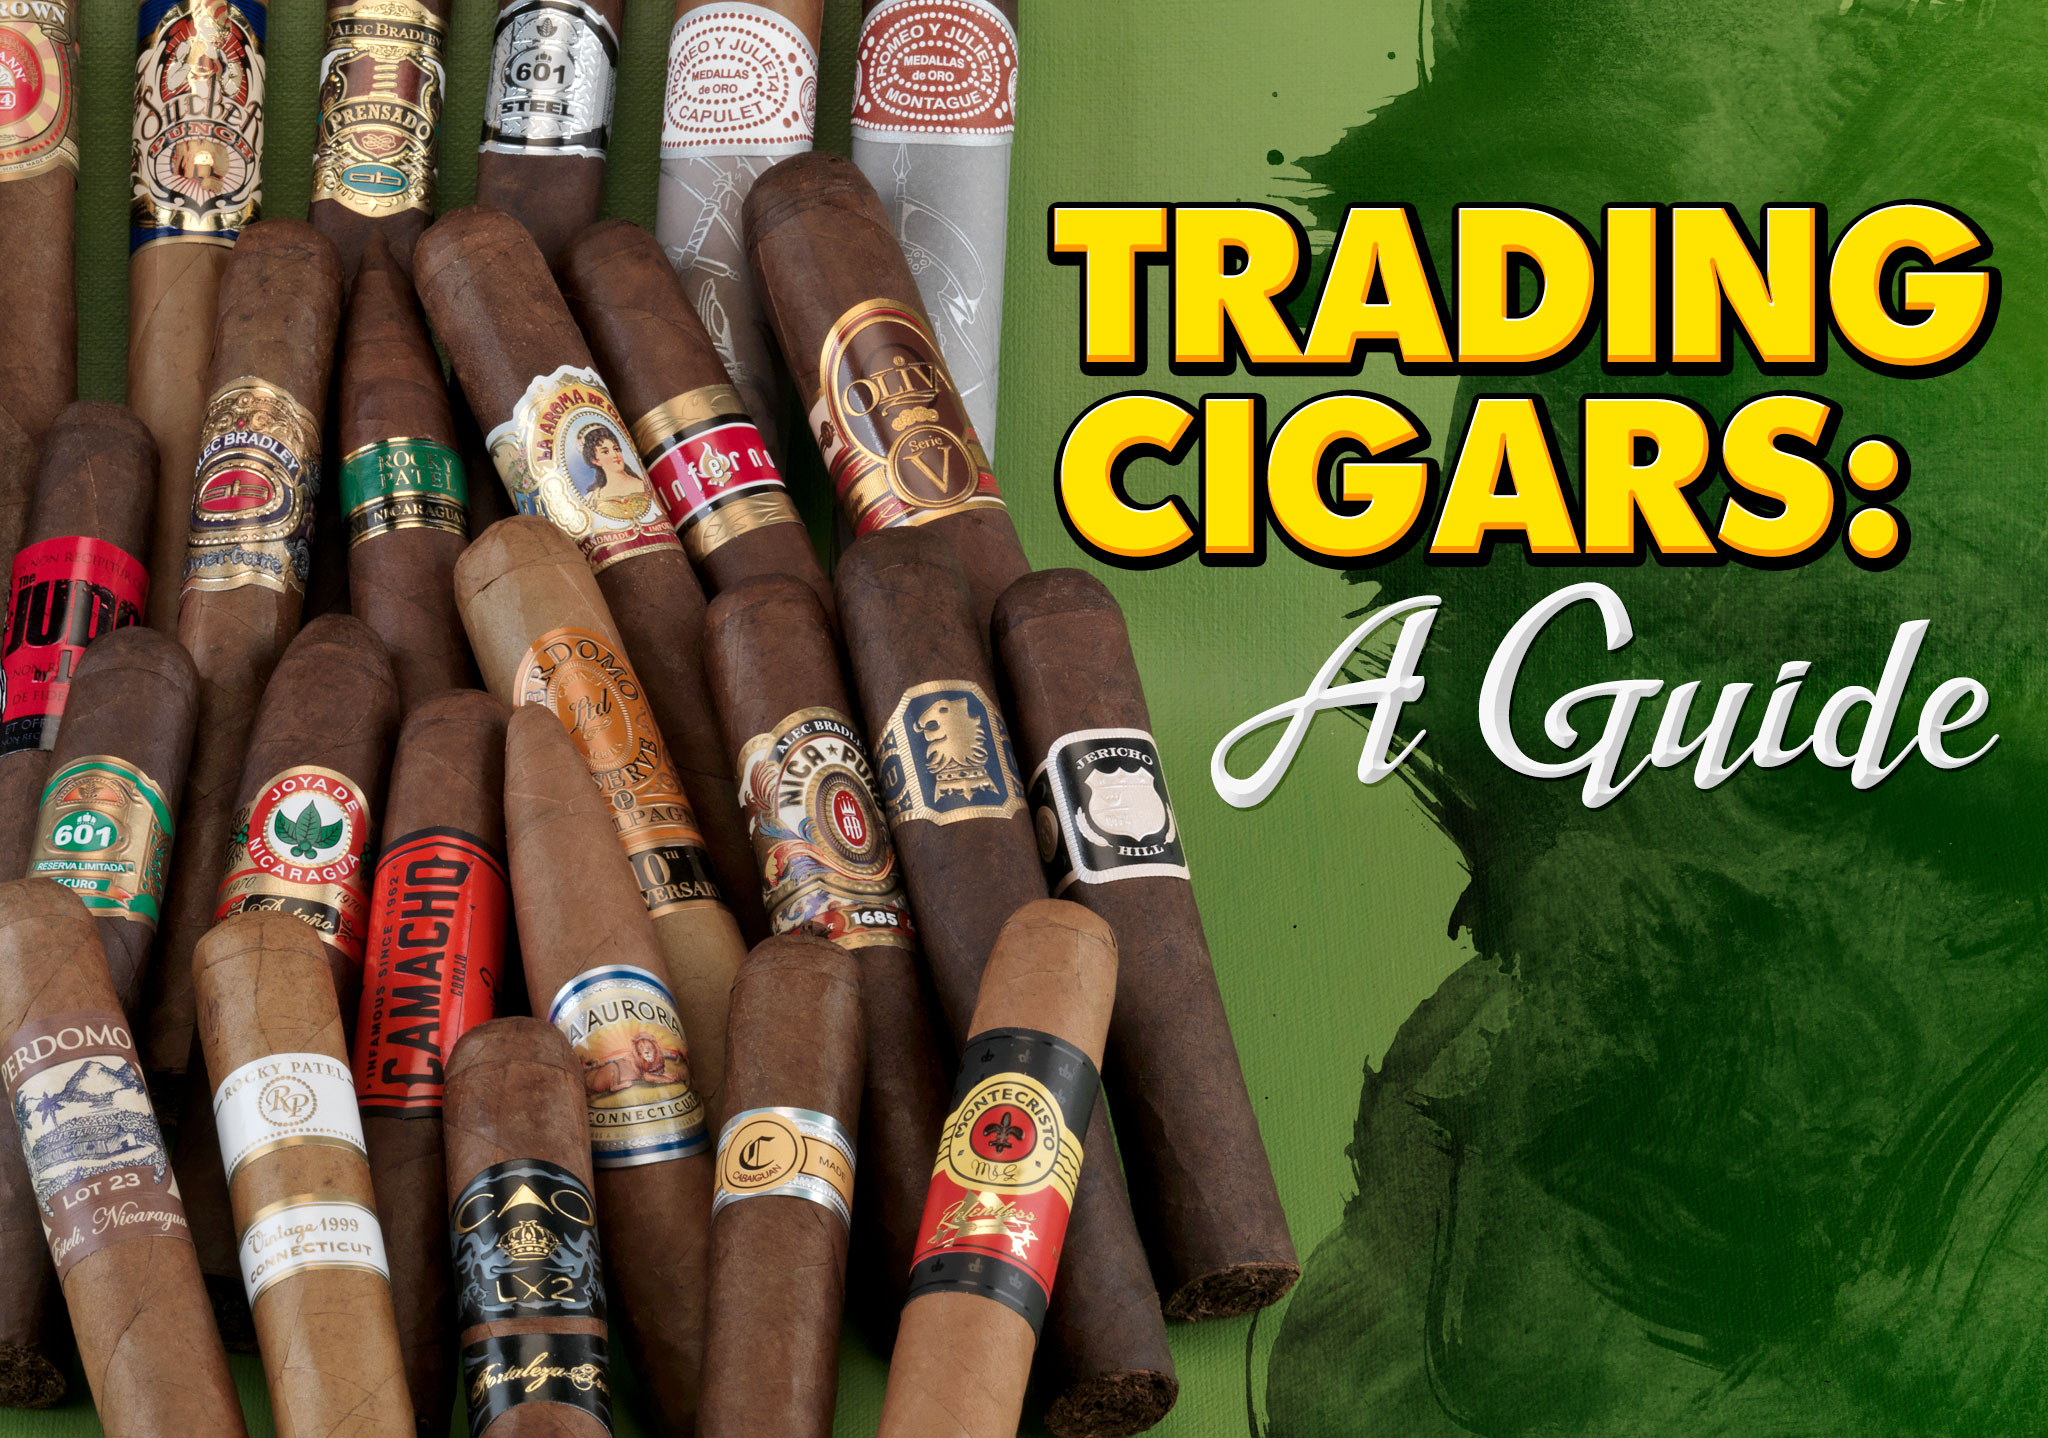 Trading Cigars: A Guide